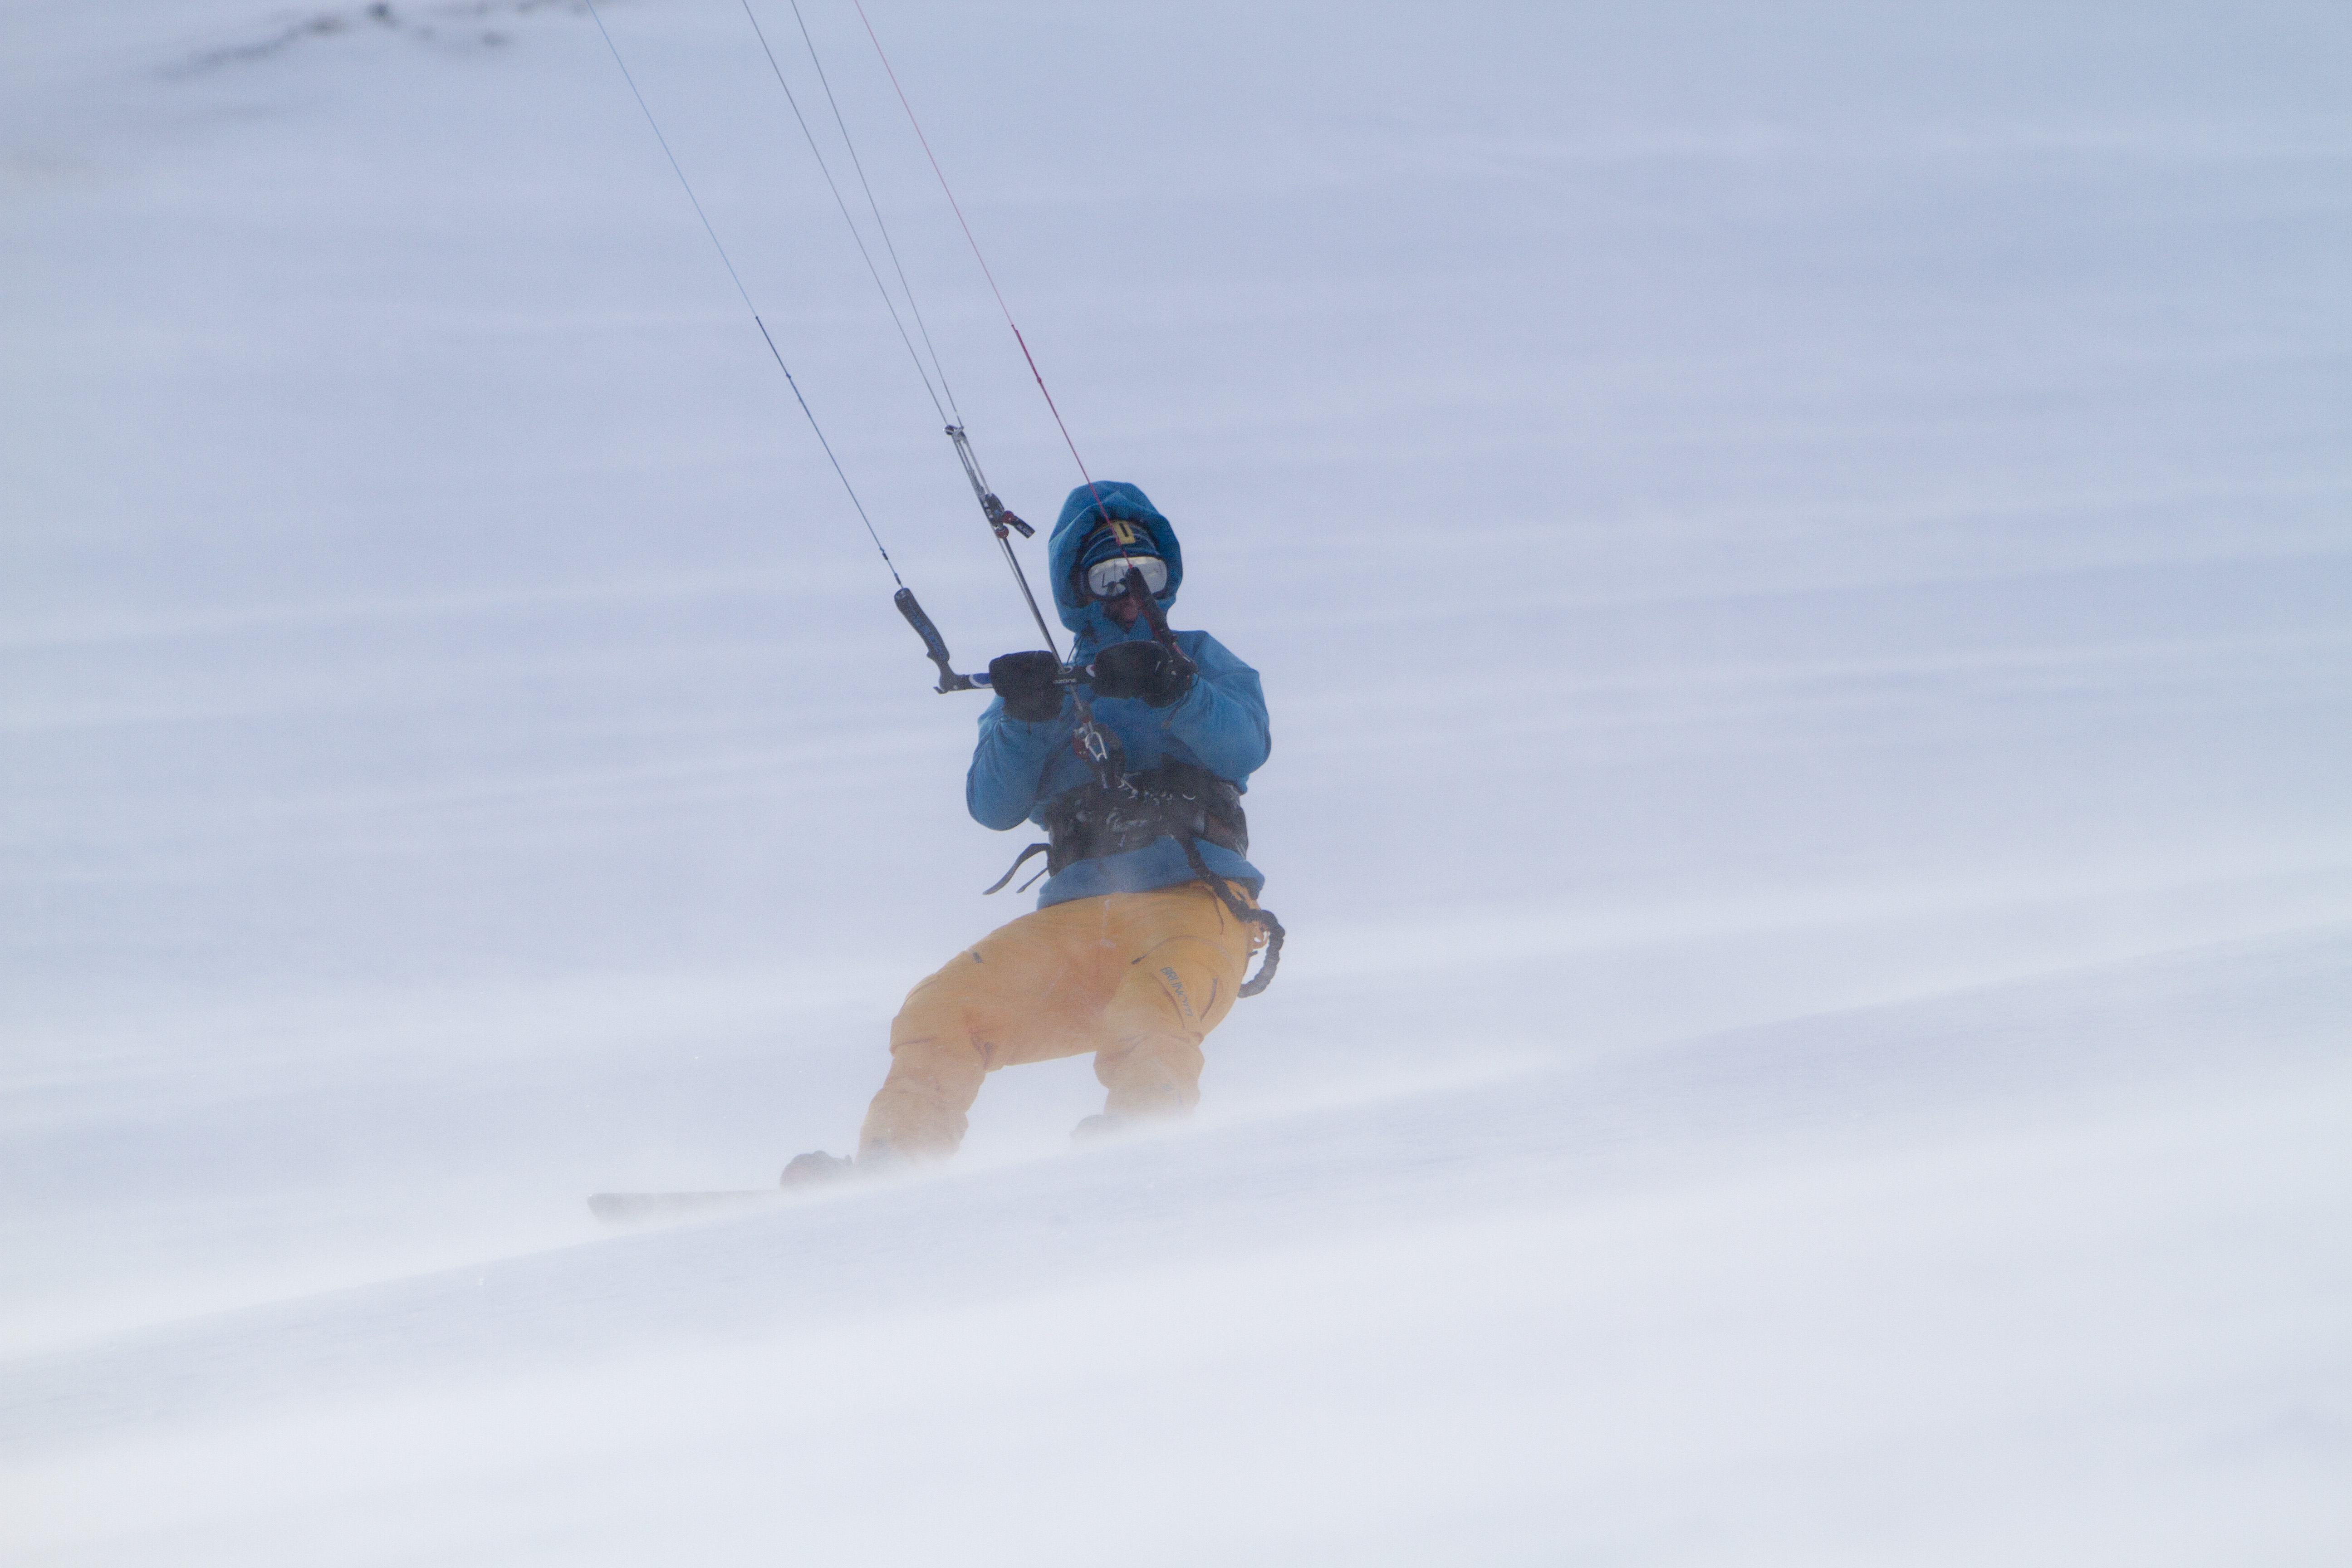 Snow Kiting – Fulfilling my Dream_BOFF 2013